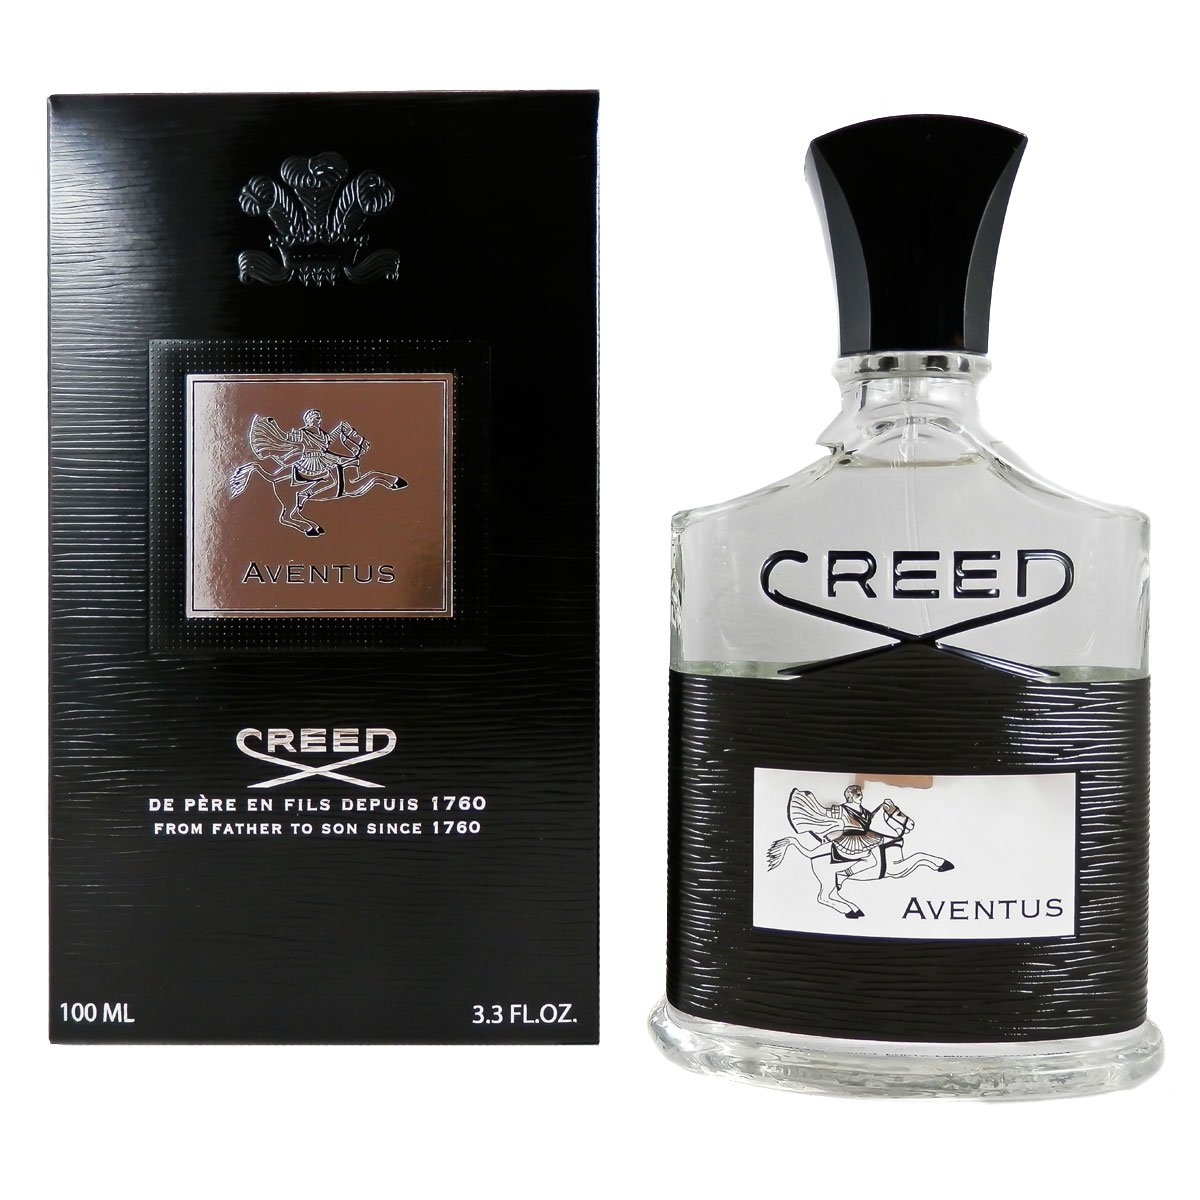 Creed Aventus Eau De Parfum 100Ml: Amazon.es